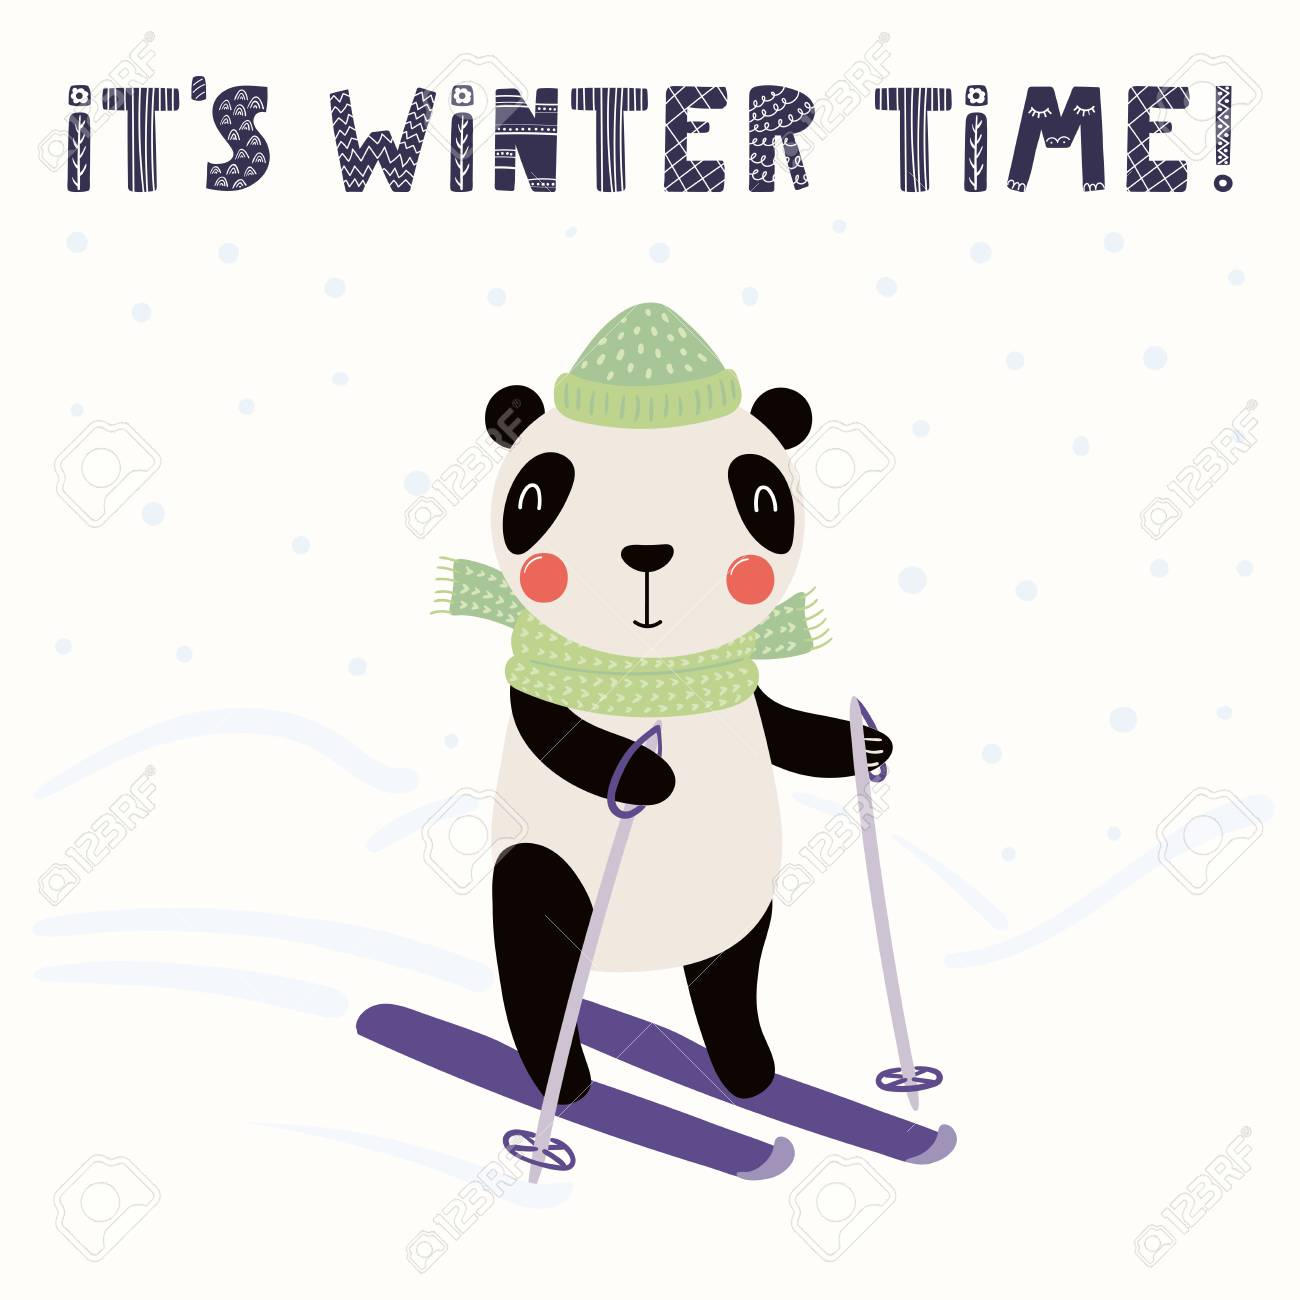 Hand drawn vector illustration of a cute funny panda skiing outdoors